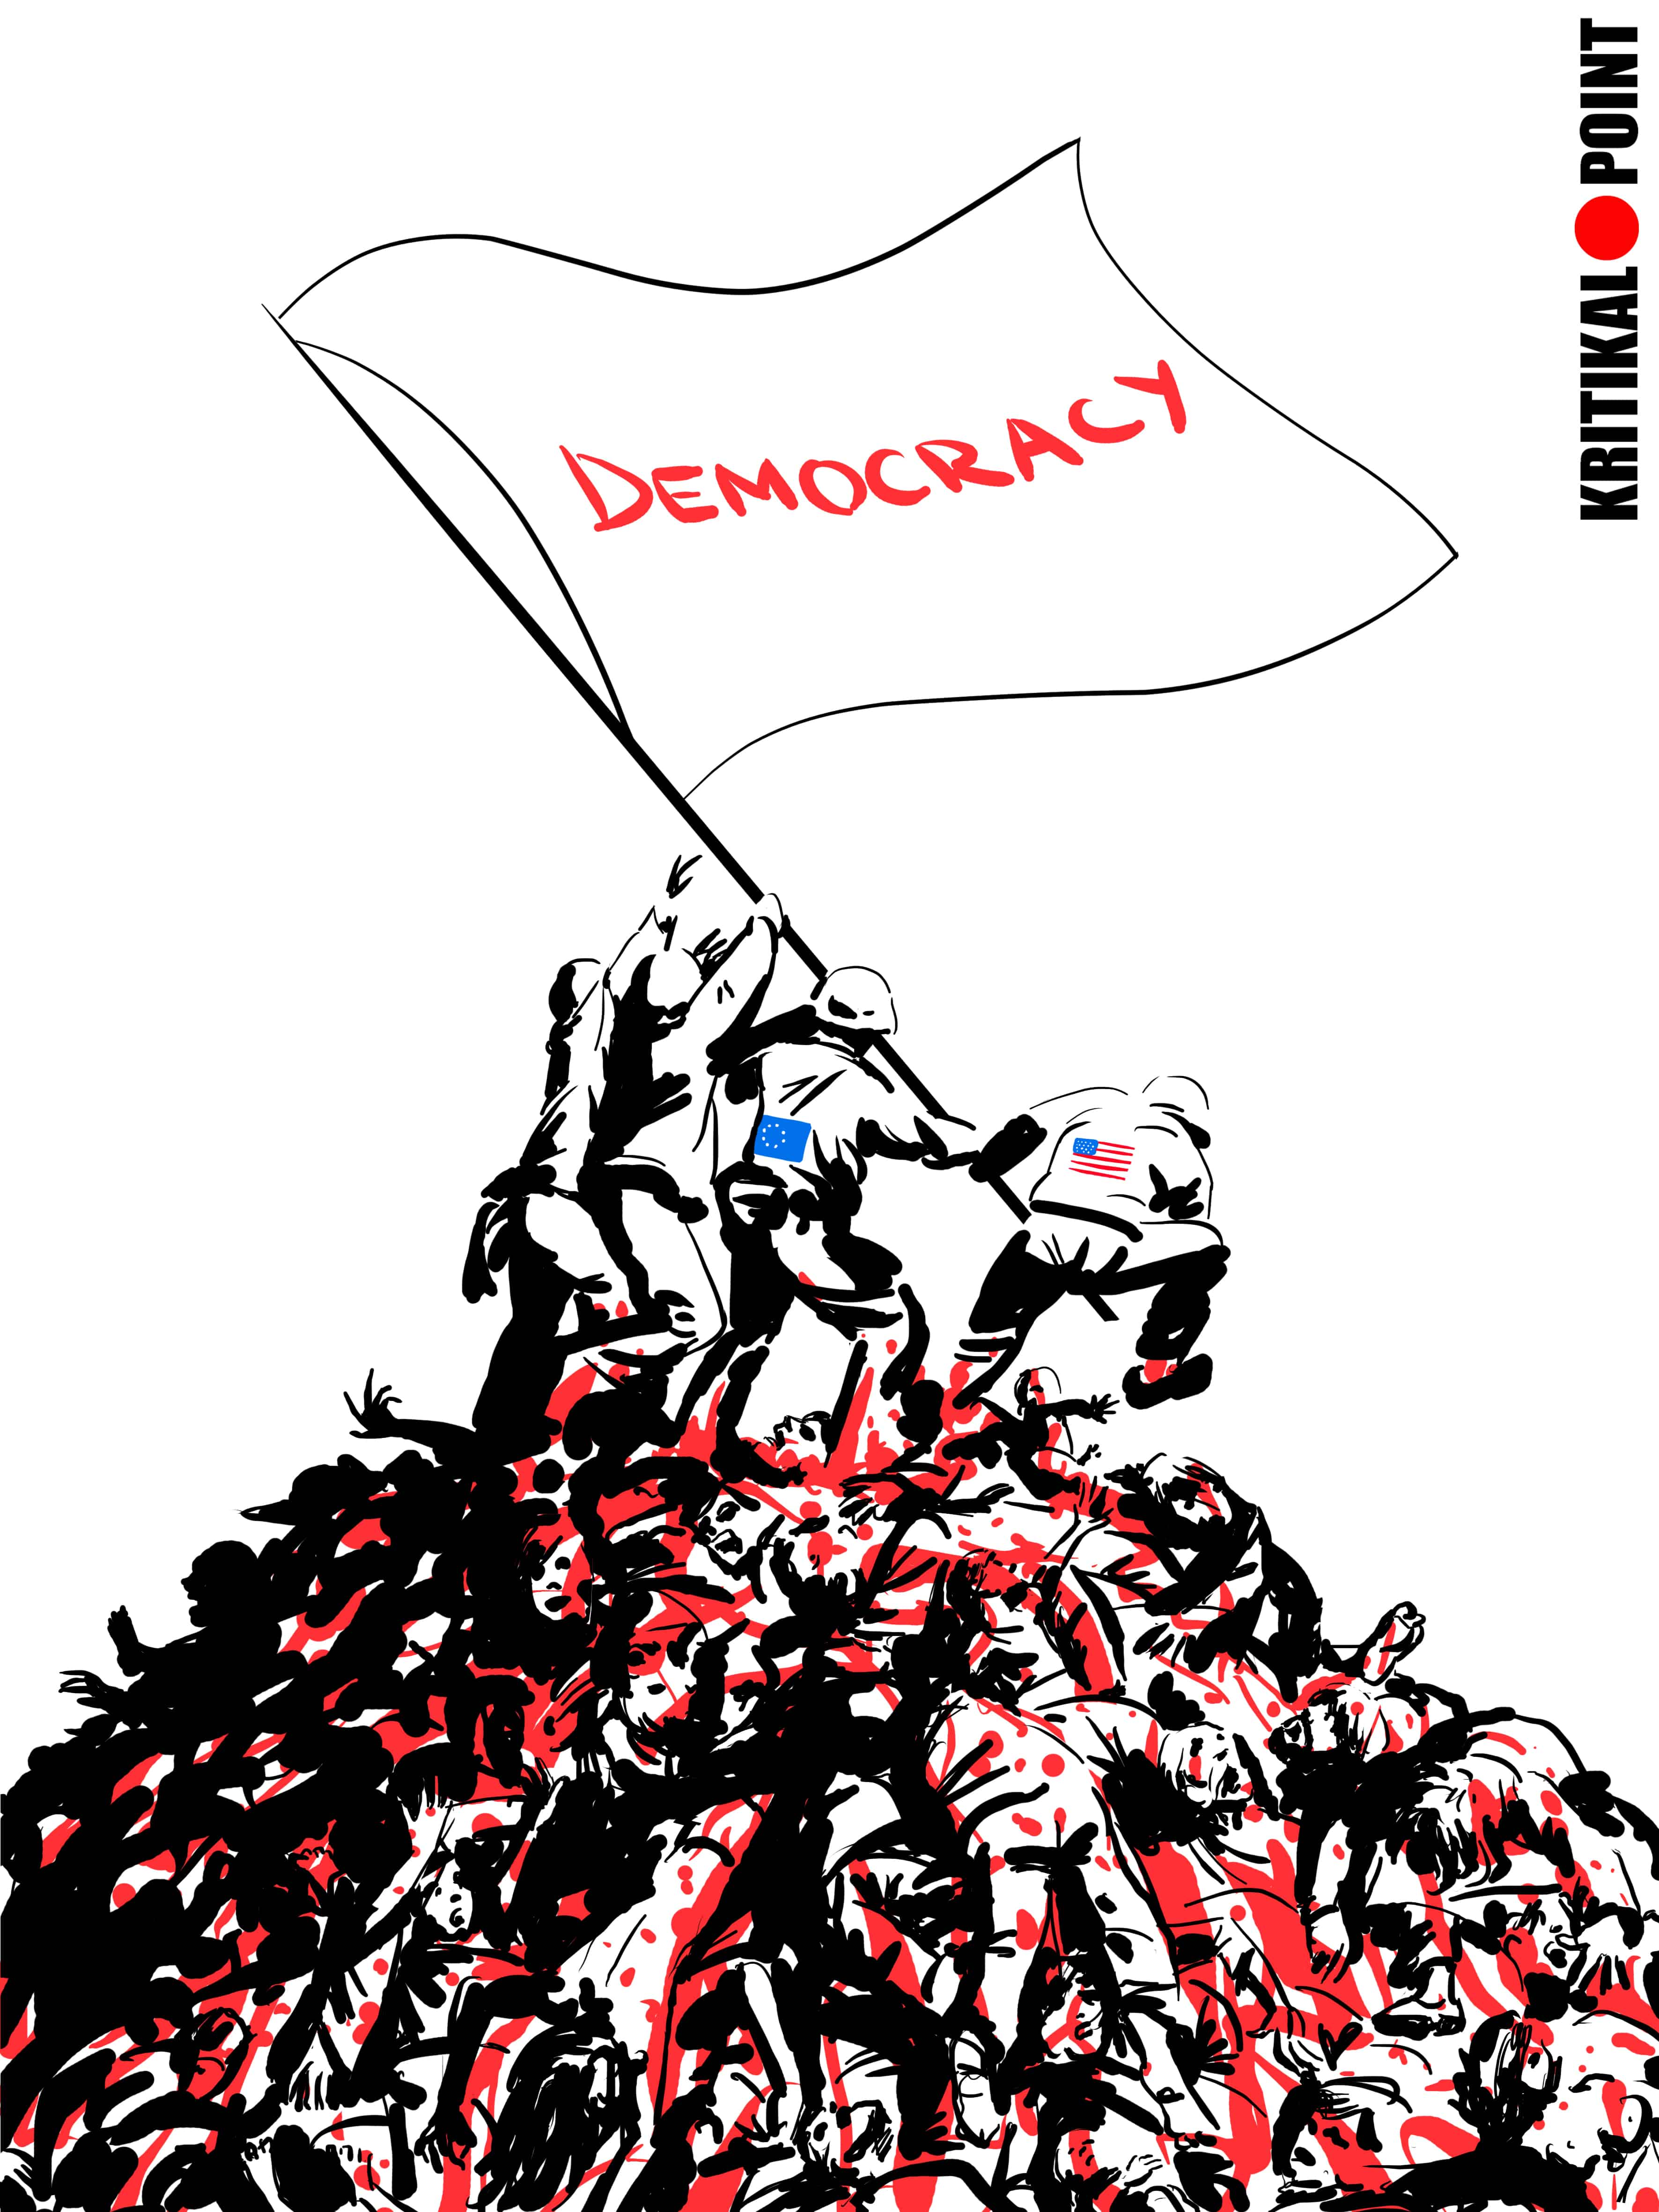 nato s democracy mr online nato s democracy